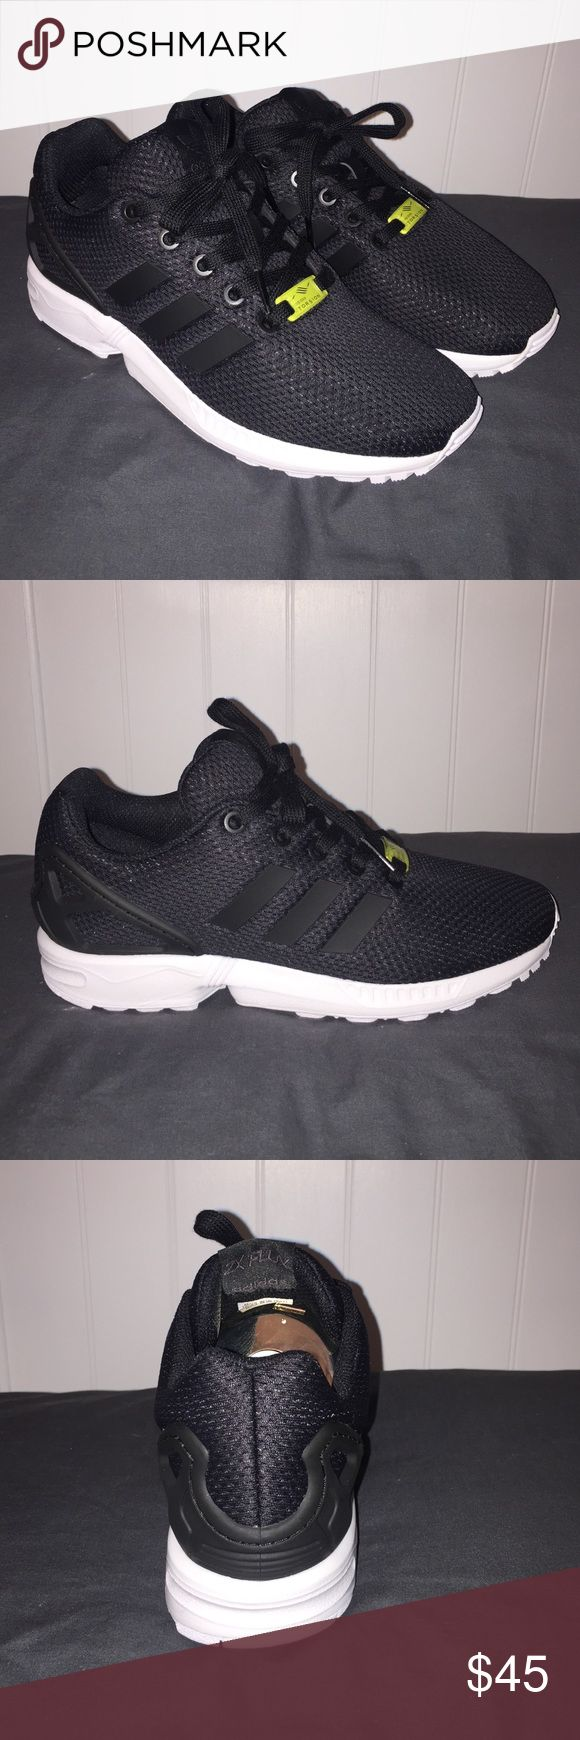 Adidas Torsion ZX Flux Shoes Brand new, Never worn. Women's Size : 6 1/2 Kids Size : 5 Adidas Shoes Sneakers